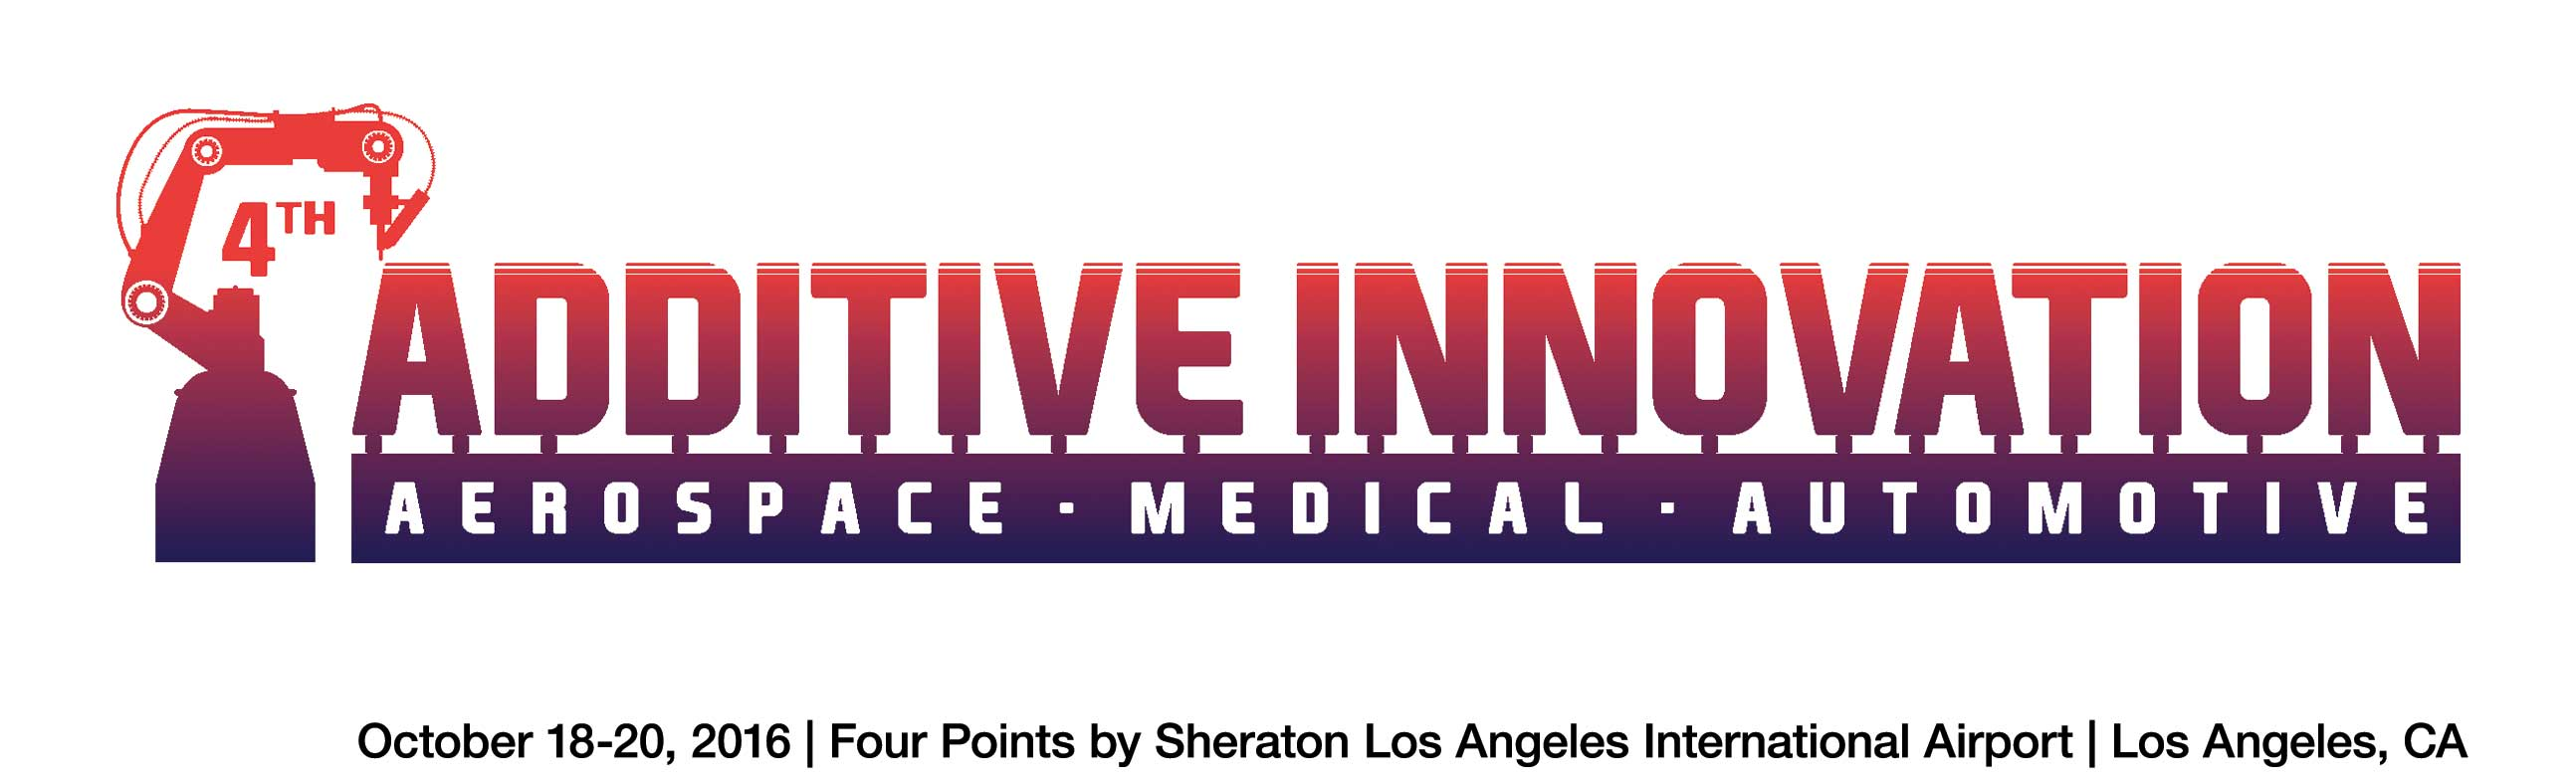 Infocast S 4th Additive Innovation Summit Returns To Los